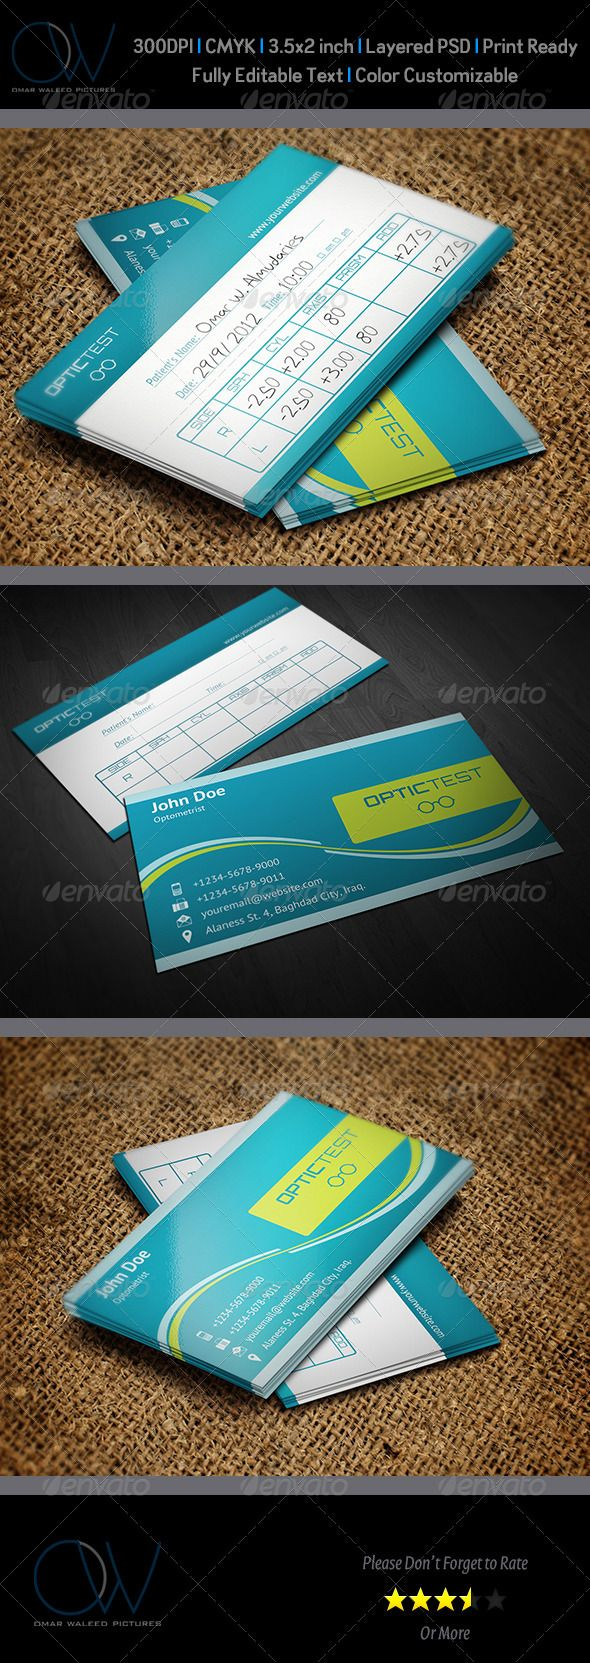 120 Best Business Card Images On Pinterest Business Cards